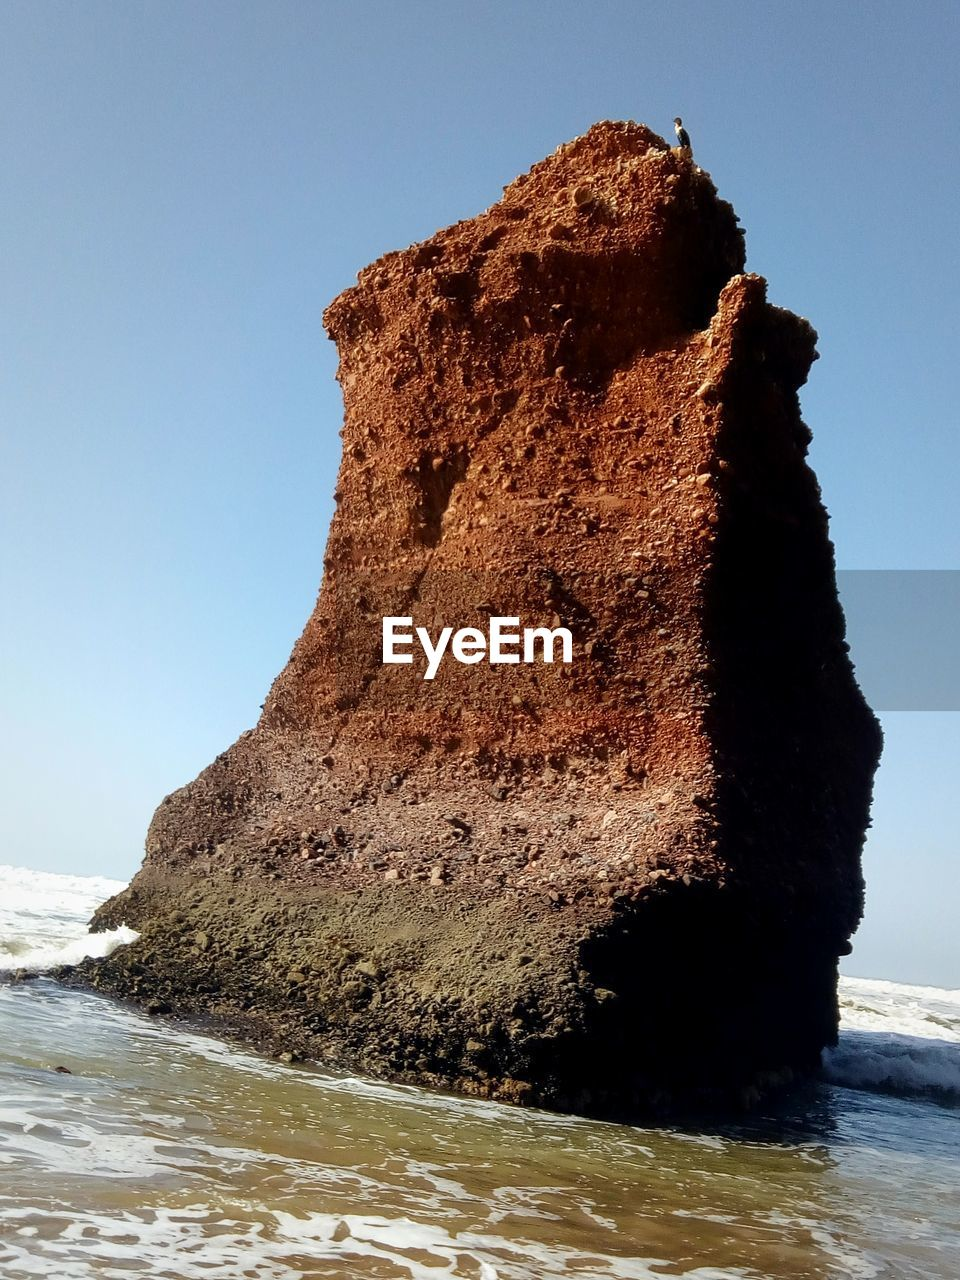 ROCK FORMATION ON SHORE AGAINST CLEAR SKY